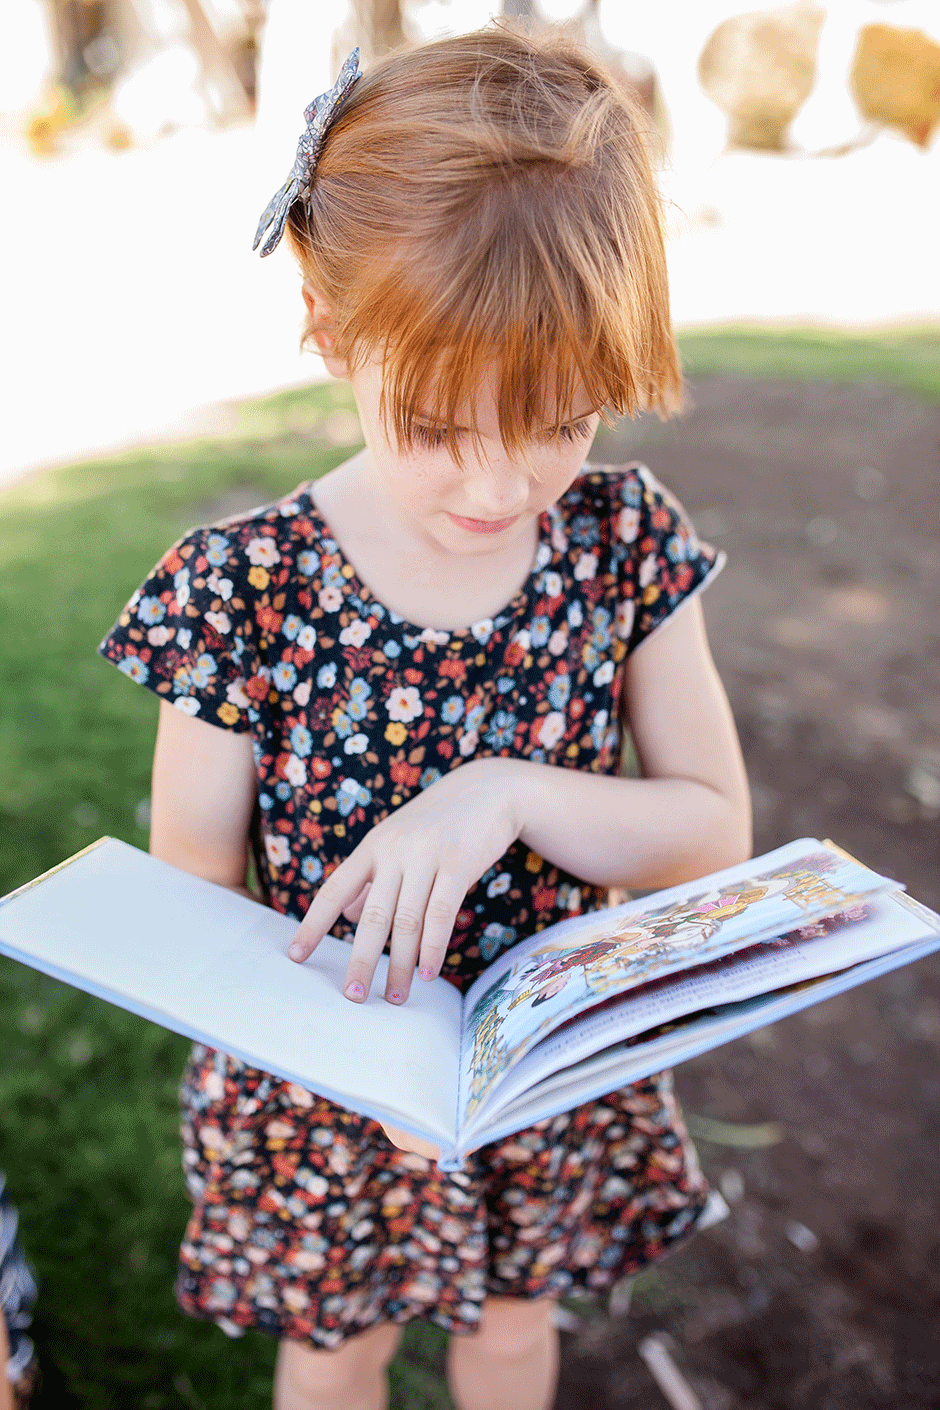 Ever wondered what it'd be like to homeschool your kids? And then get worried about logistics, socialization, and the chaos? Get the encouragement you need!